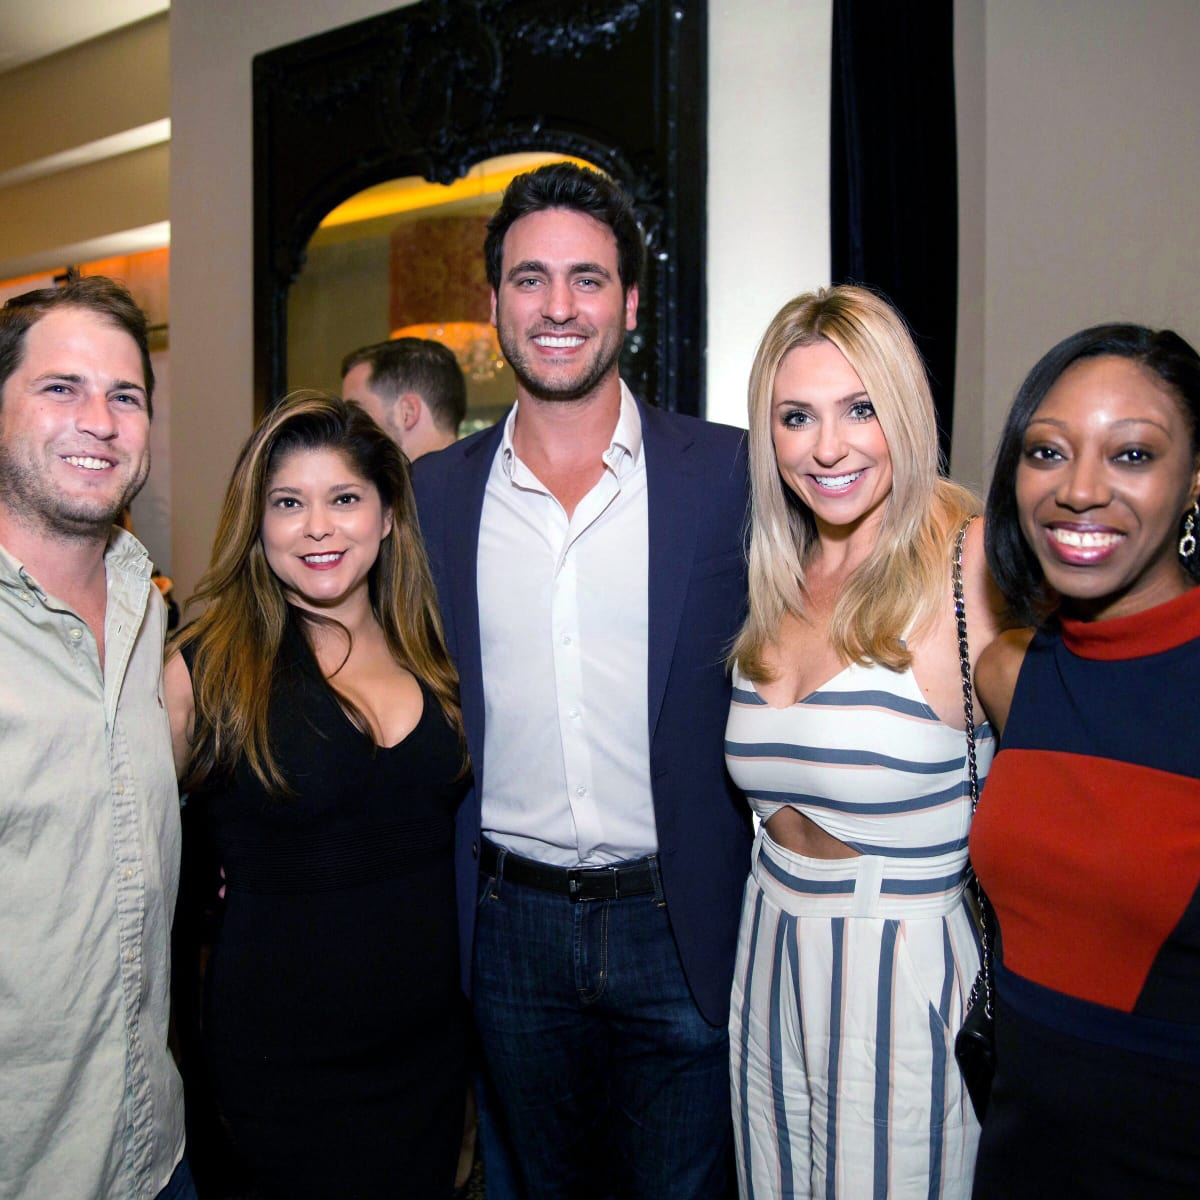 Houston, SportsMap launch party, October 2017, Nick Scurfield, Marcy de Luna, Lane Craft, Chita Craft, Brittaney Wilmore